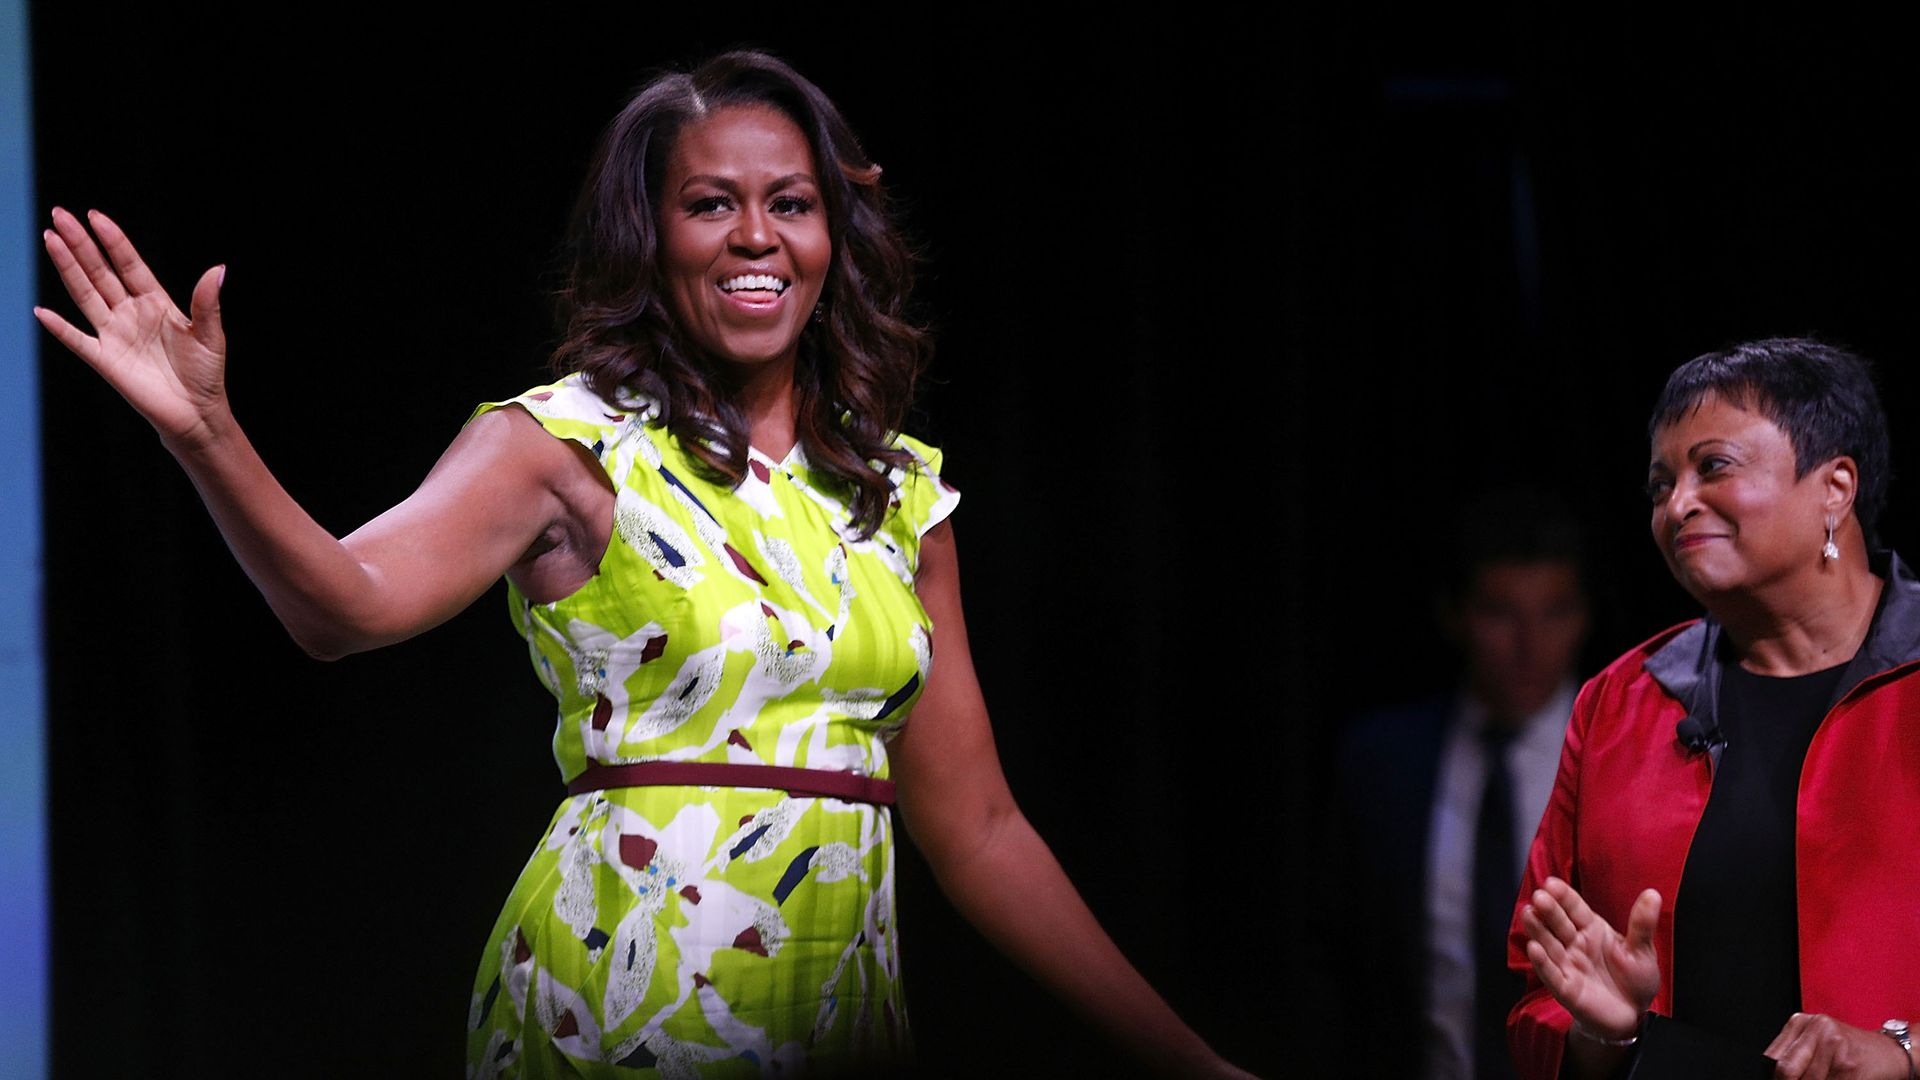 Michelle Obama waving on stage in a green flower=print dress.